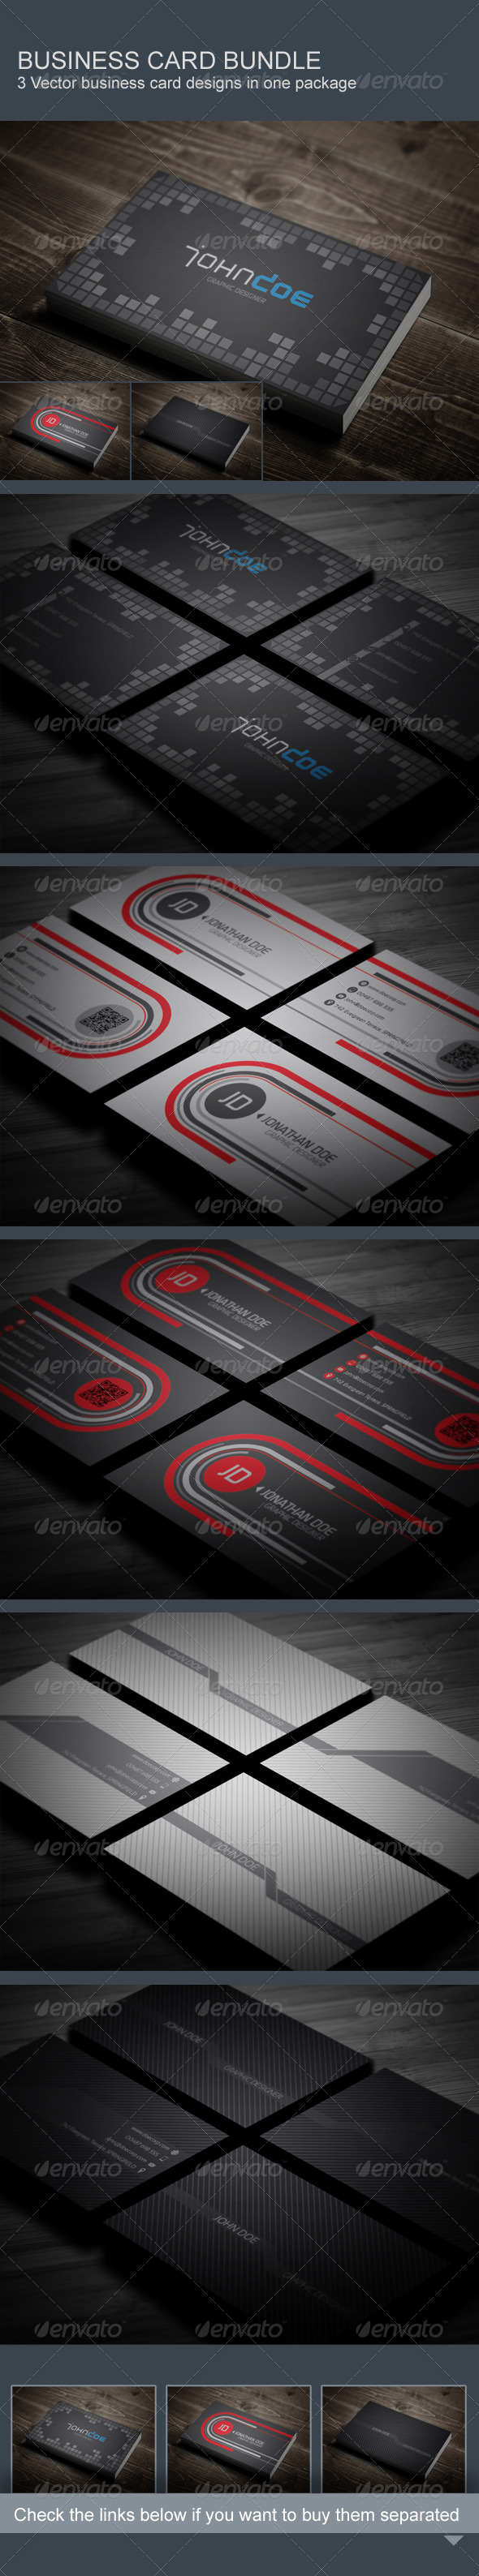 GraphicRiver Business Card Bundle 8047844